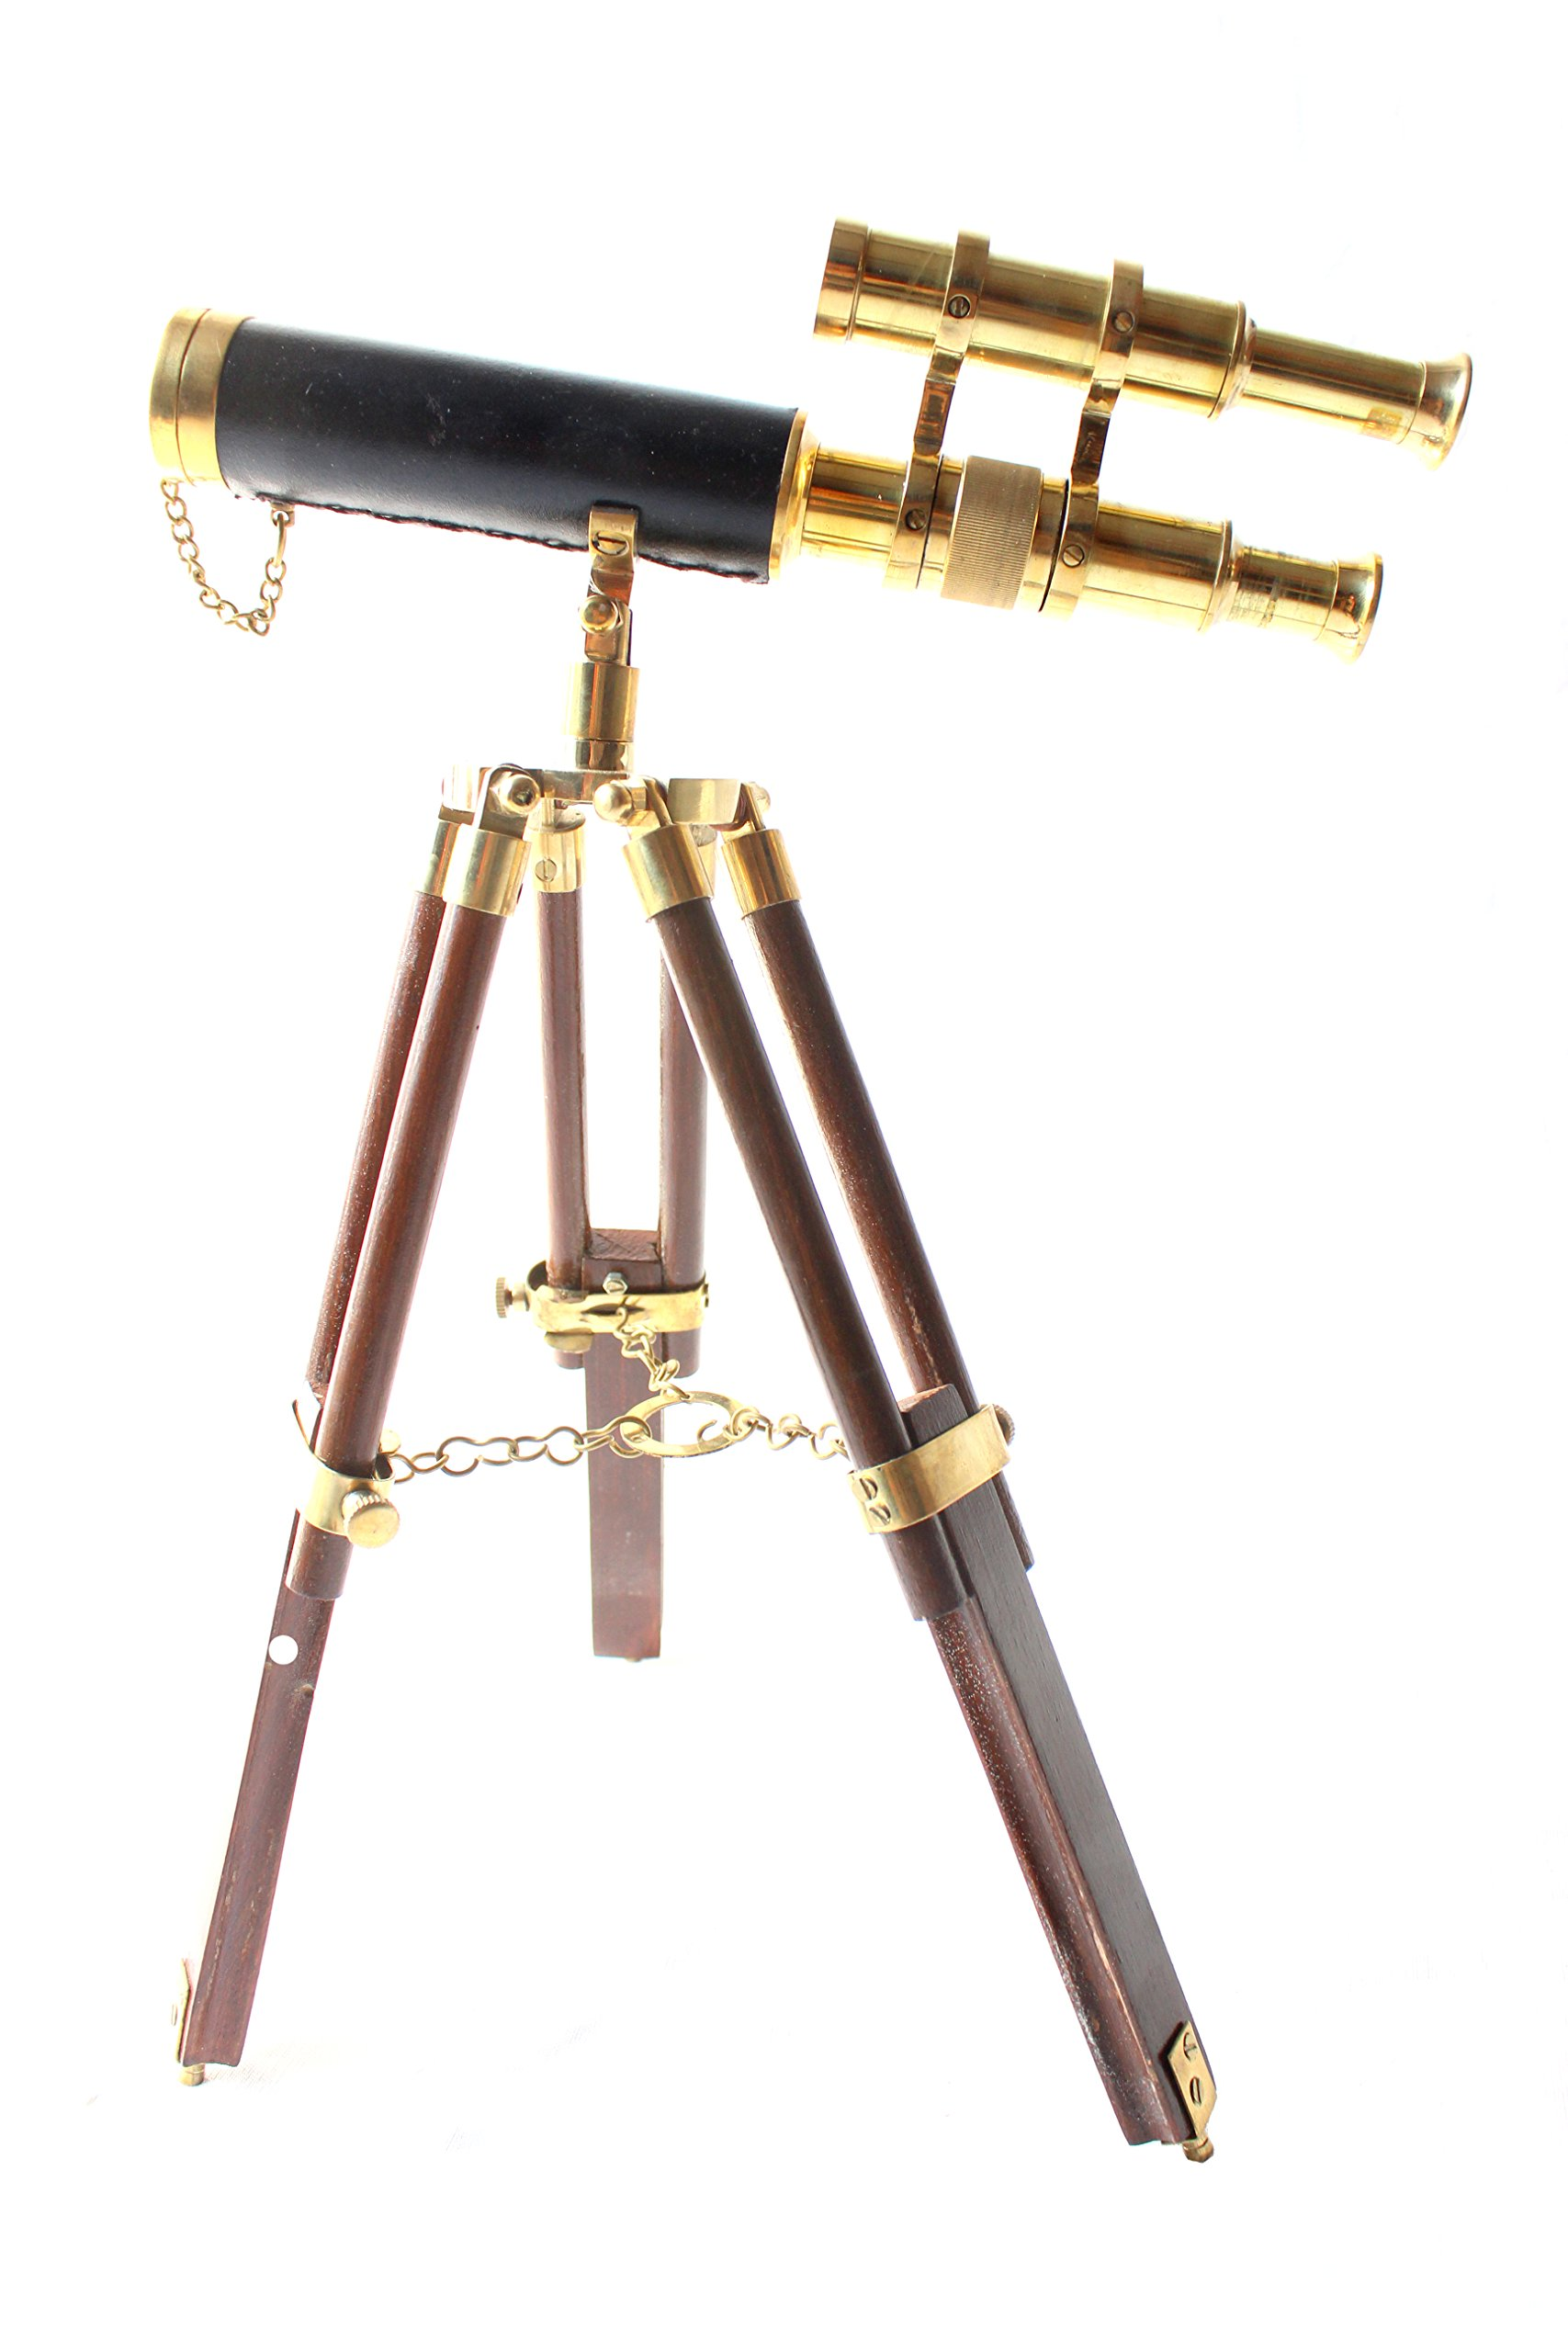 Nautical Vintage Telescope Wooden Tripod Collectible Brass Finish & Brown Desktop Gift-replica